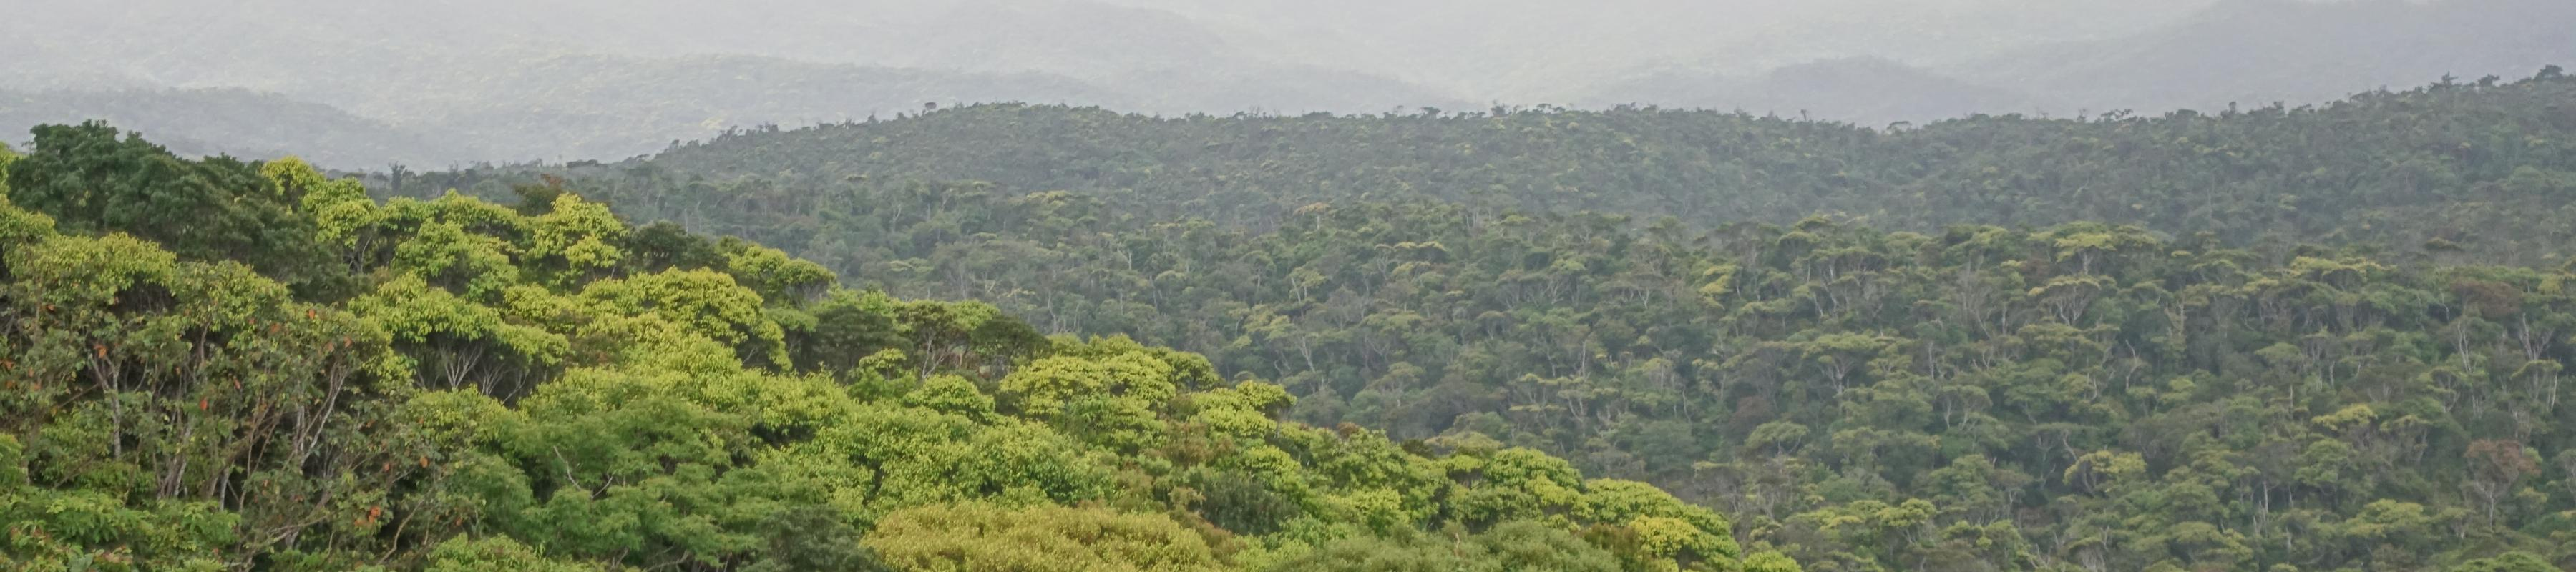 Aerial view of forest.